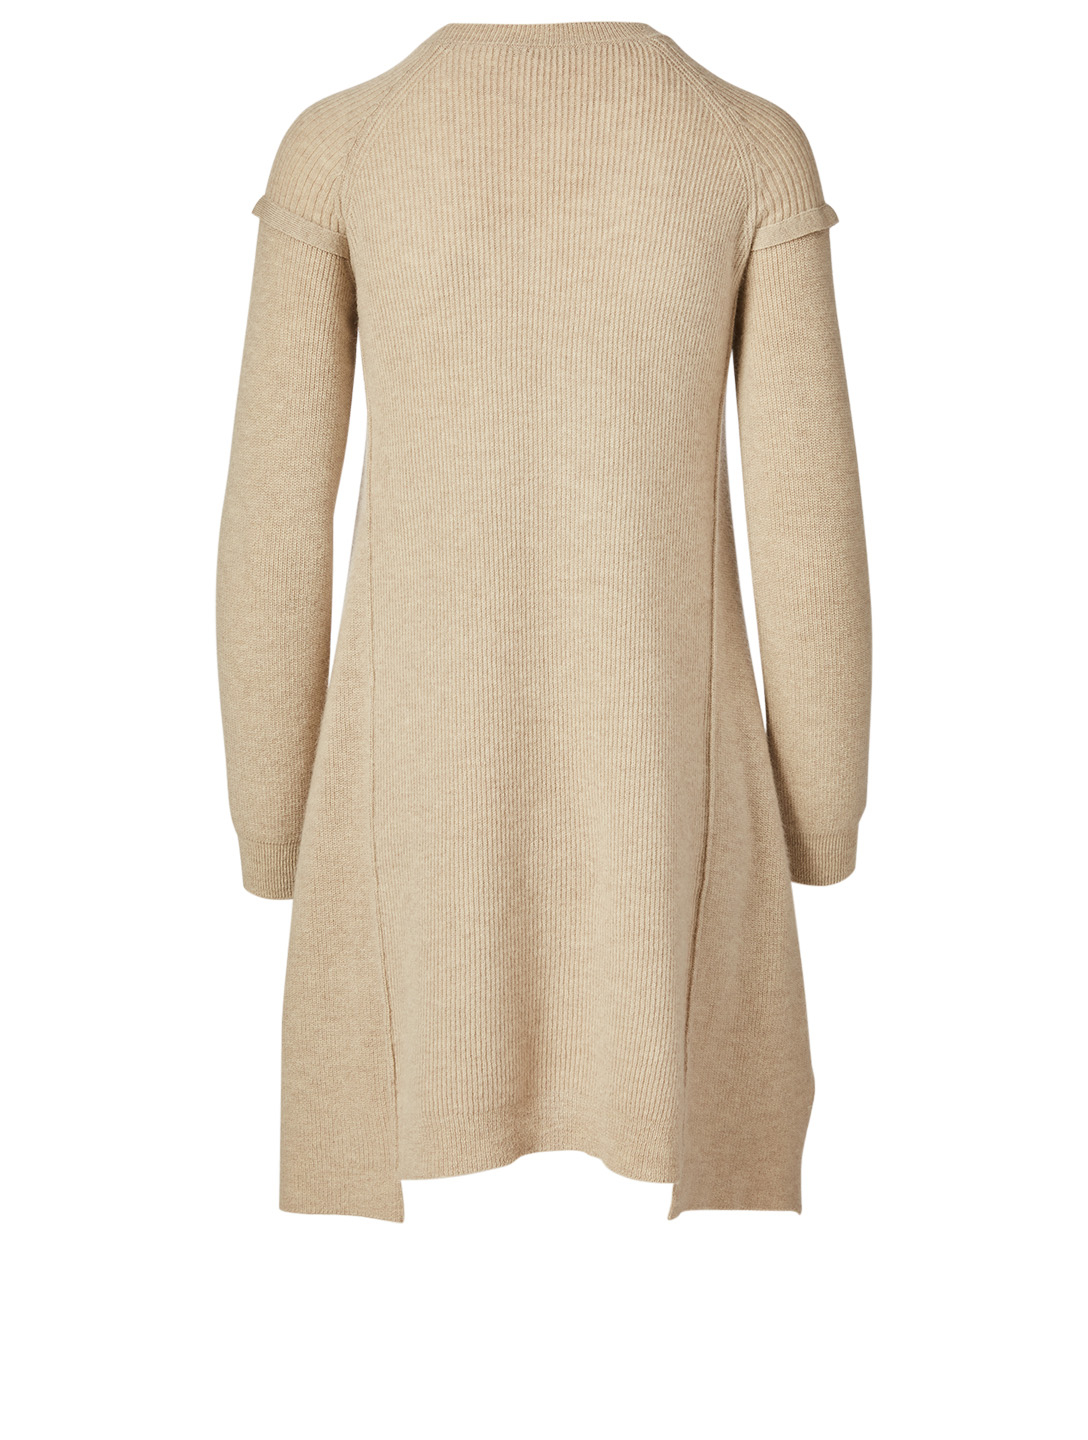 STELLA MCCARTNEY Wool And Alpaca Deconstructed Dress Women's Beige